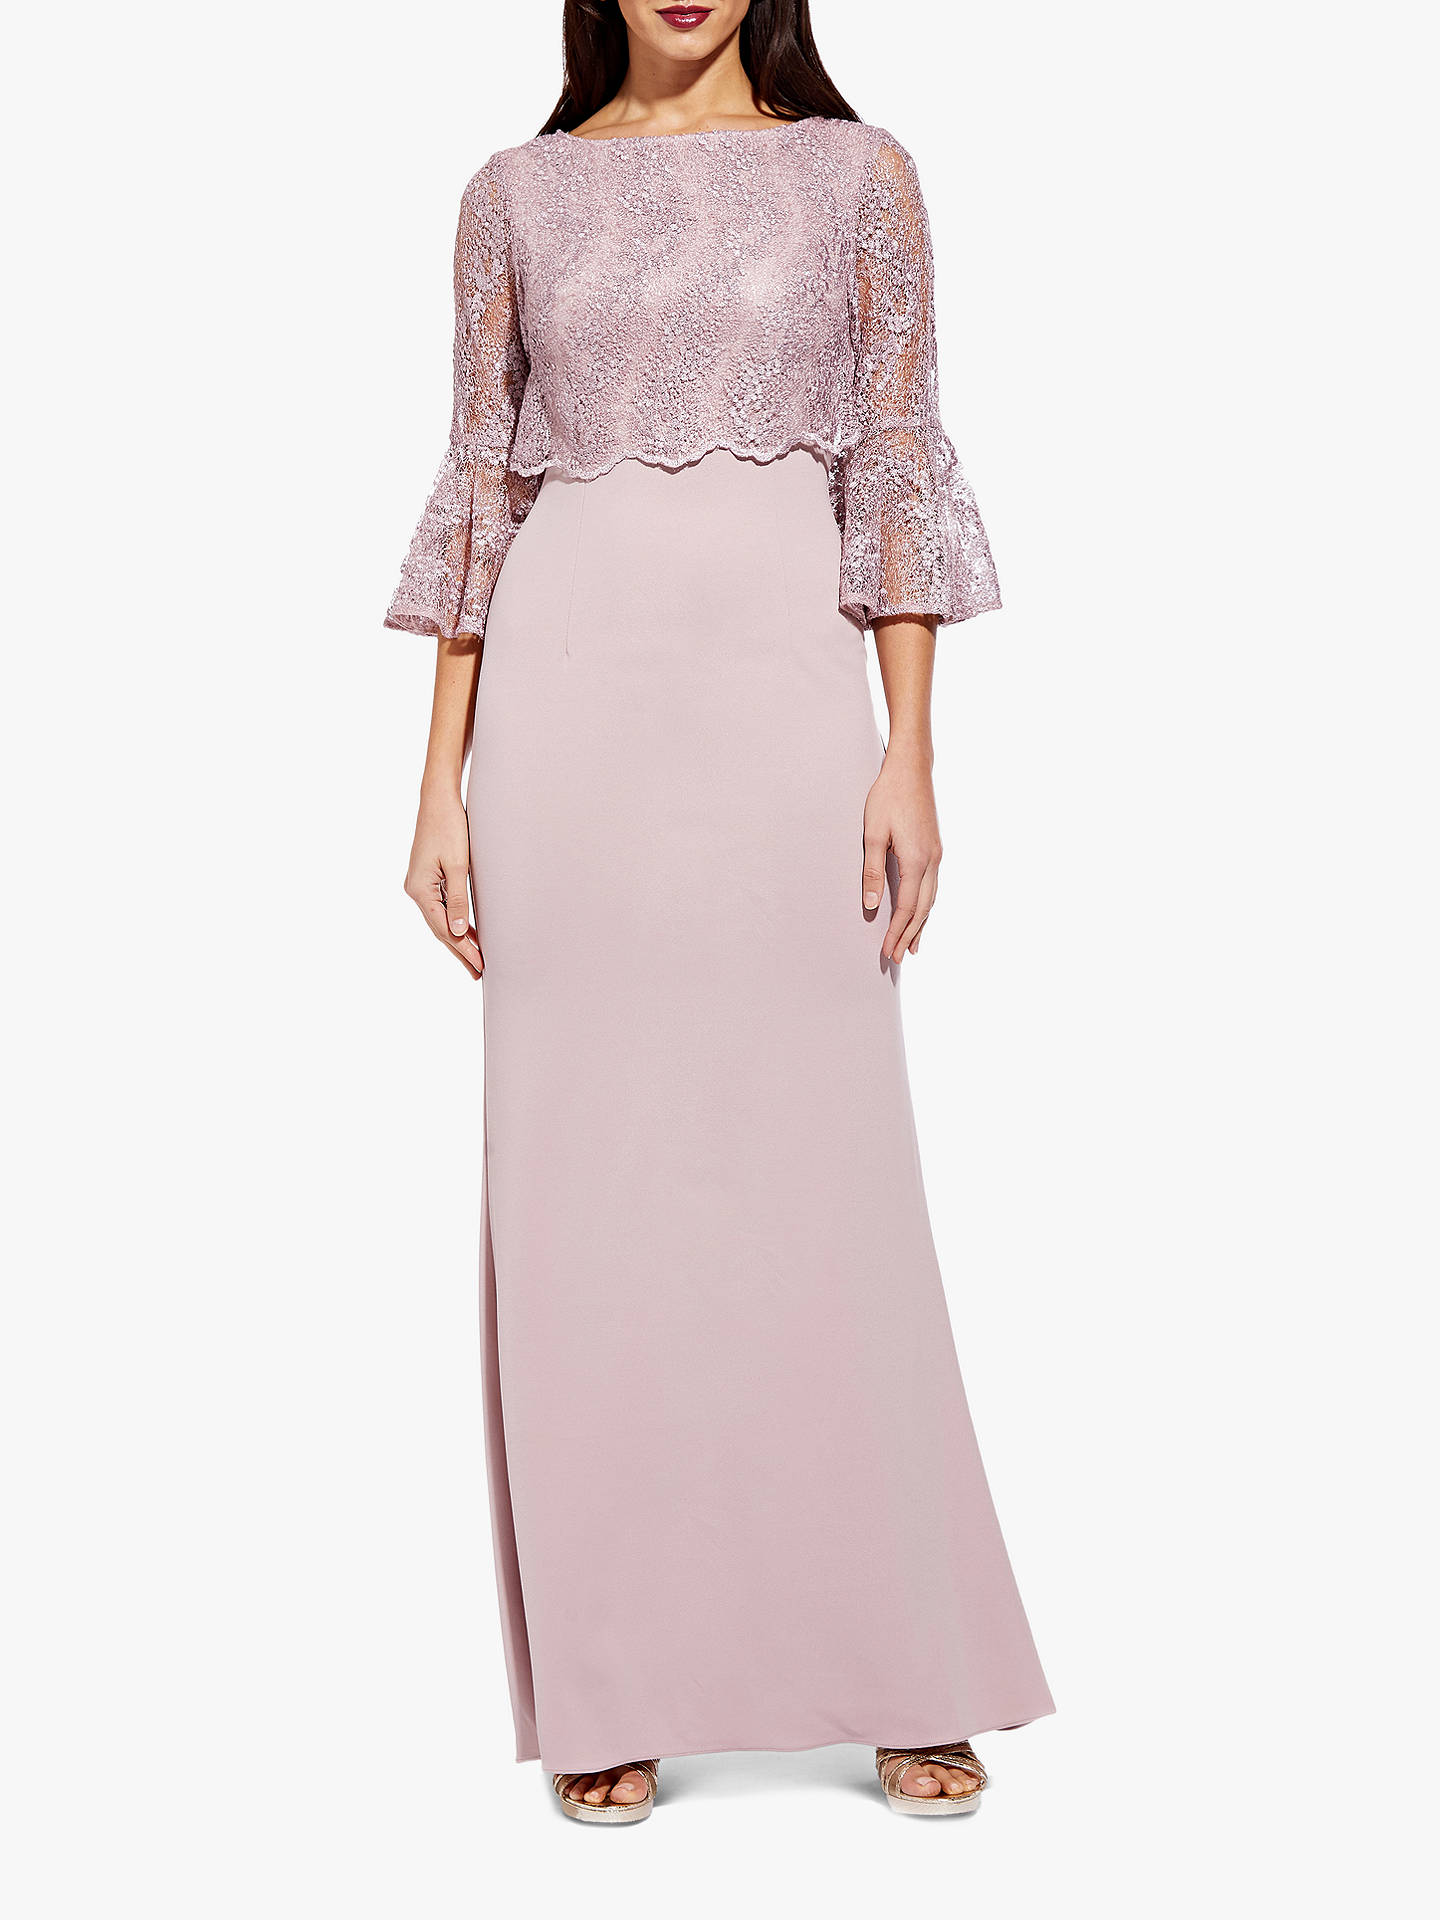 BuyAdrianna Papell Embroidered Maxi Dress, Dusty Rose, 16 Online at johnlewis.com